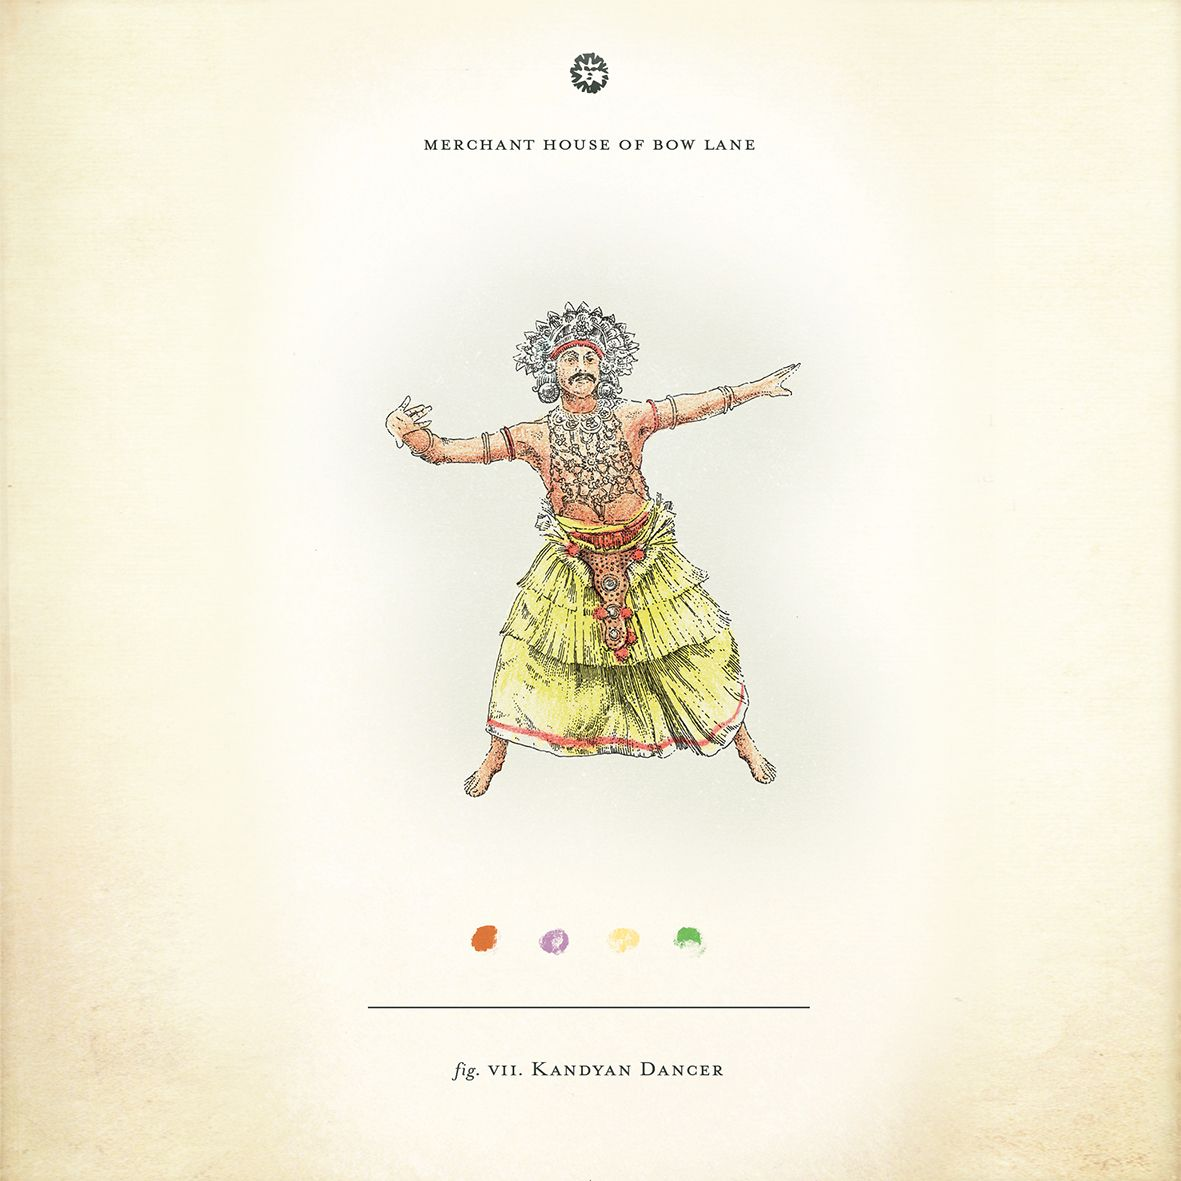 Kandyan Dancer Illustration From The New Merchant House Of Bow Lane Cocktail Menu Features Fourteen Illustrated Rum Illustration Black And White Lines Chadwick